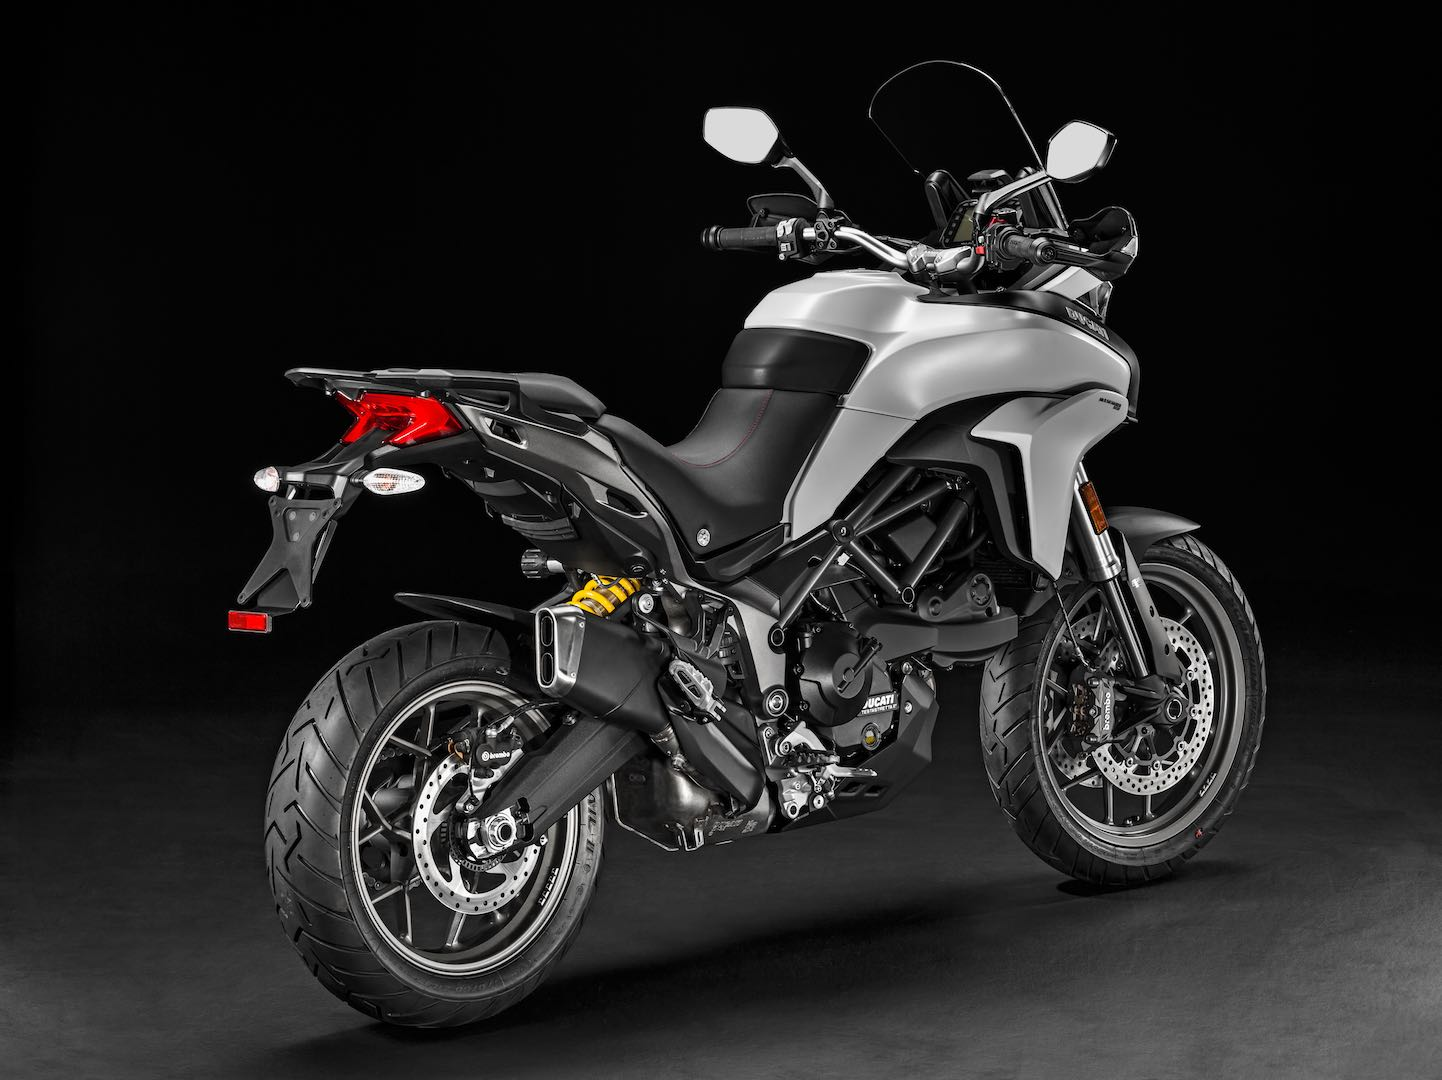 2017 ducati multistrada 950 first look | 12 fast facts